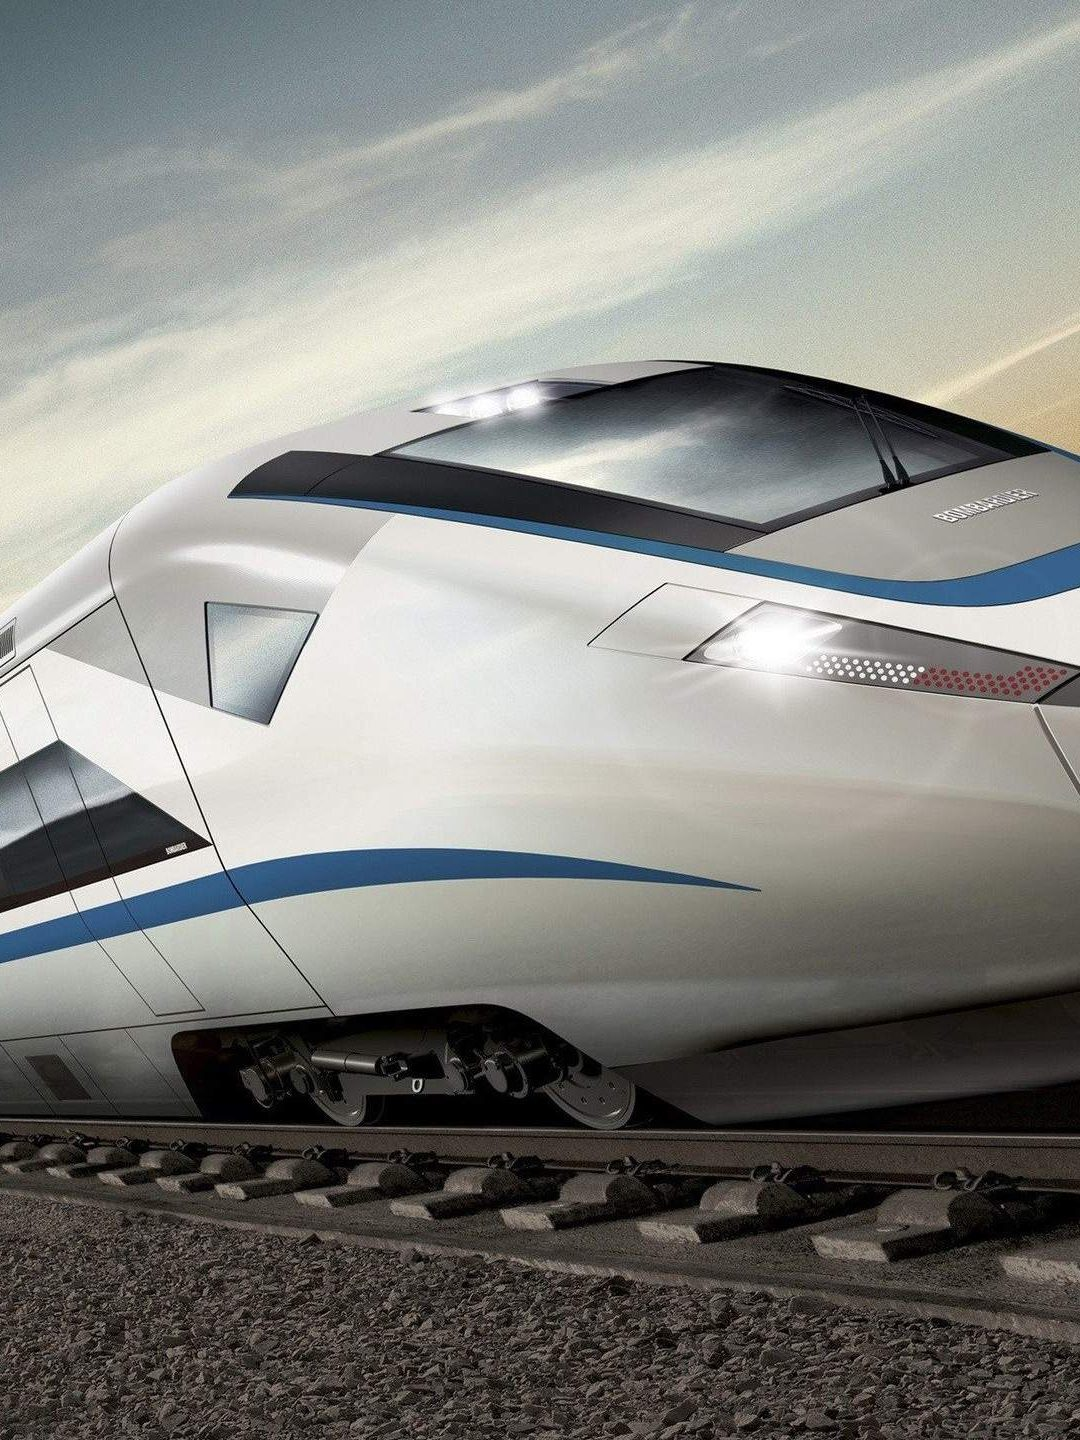 Download Japan Bullet Train Wallpaper for desktop mobile 1080x1440